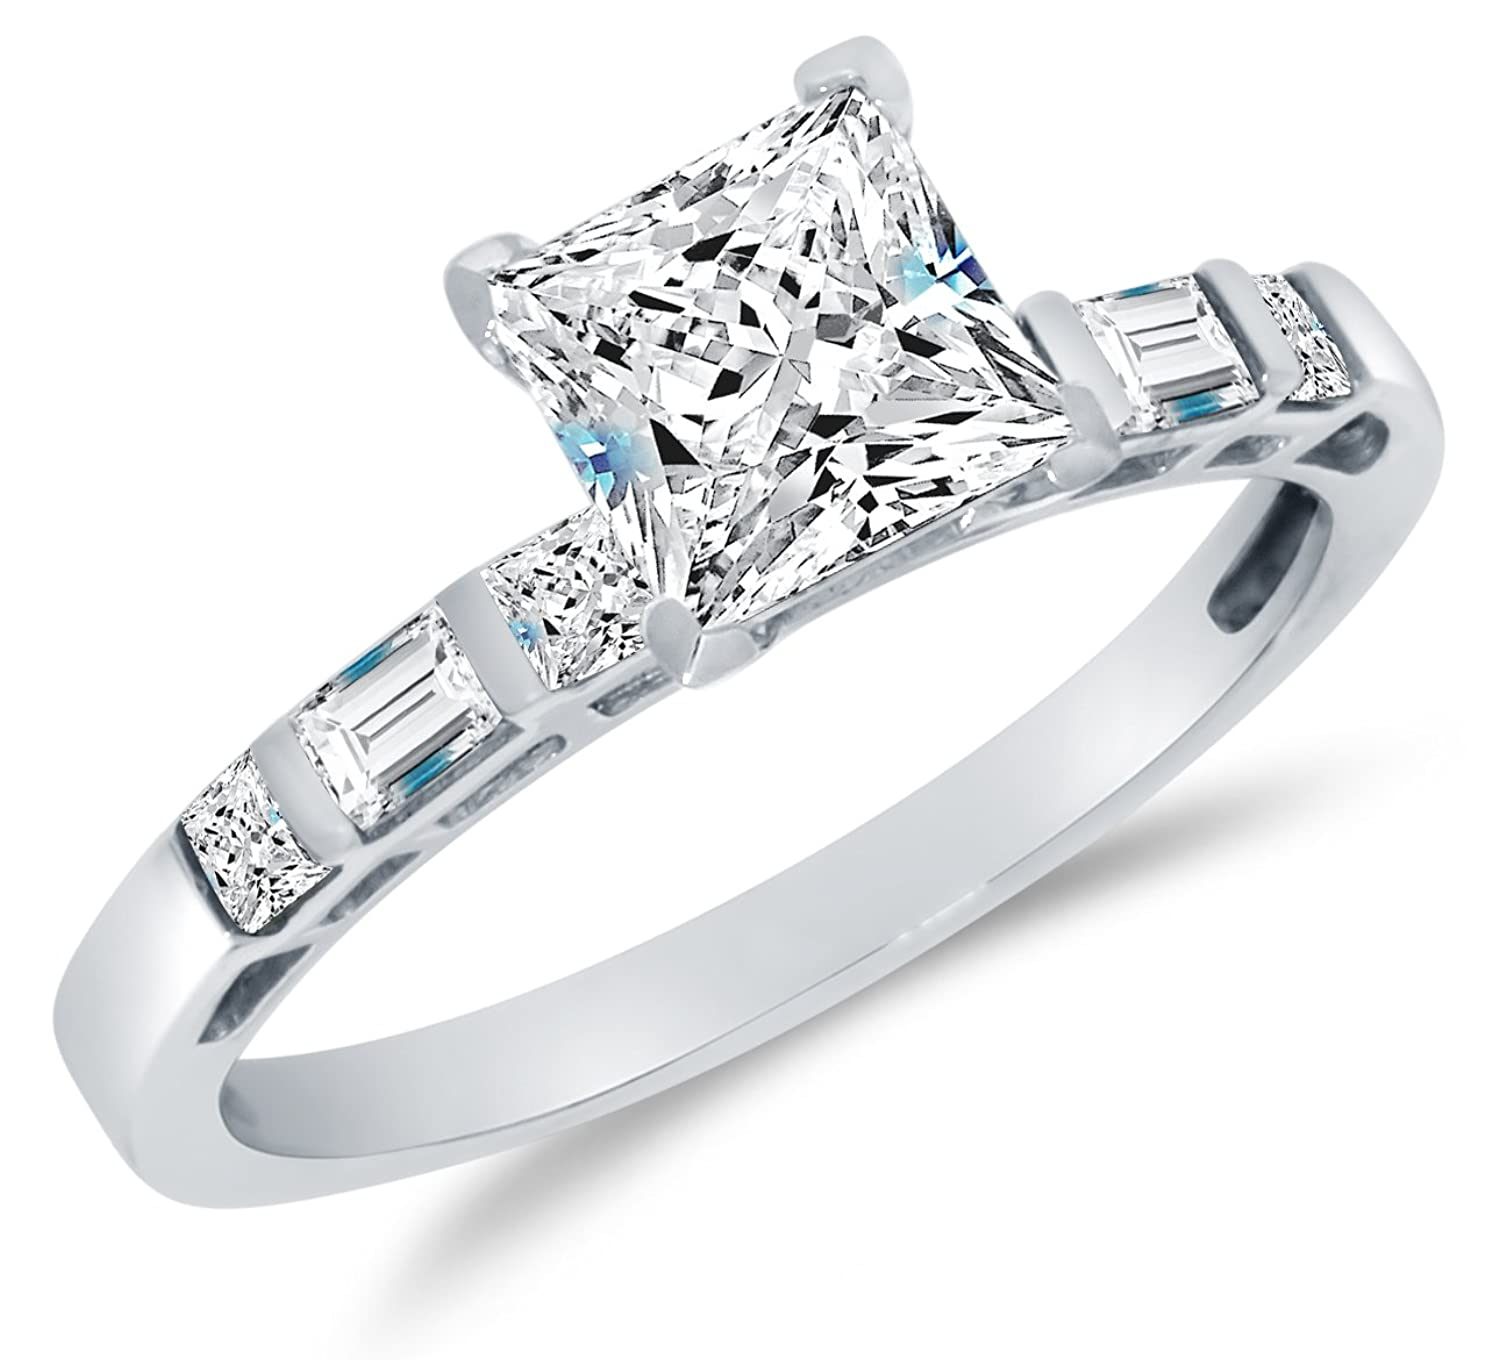 Solid 14k White Gold Highest Quality CZ Cubic Zirconia Engagement Ring – Princess Cut Solitaire with Baguette Side Stones (1.25cttw., 1.0ct. Center)